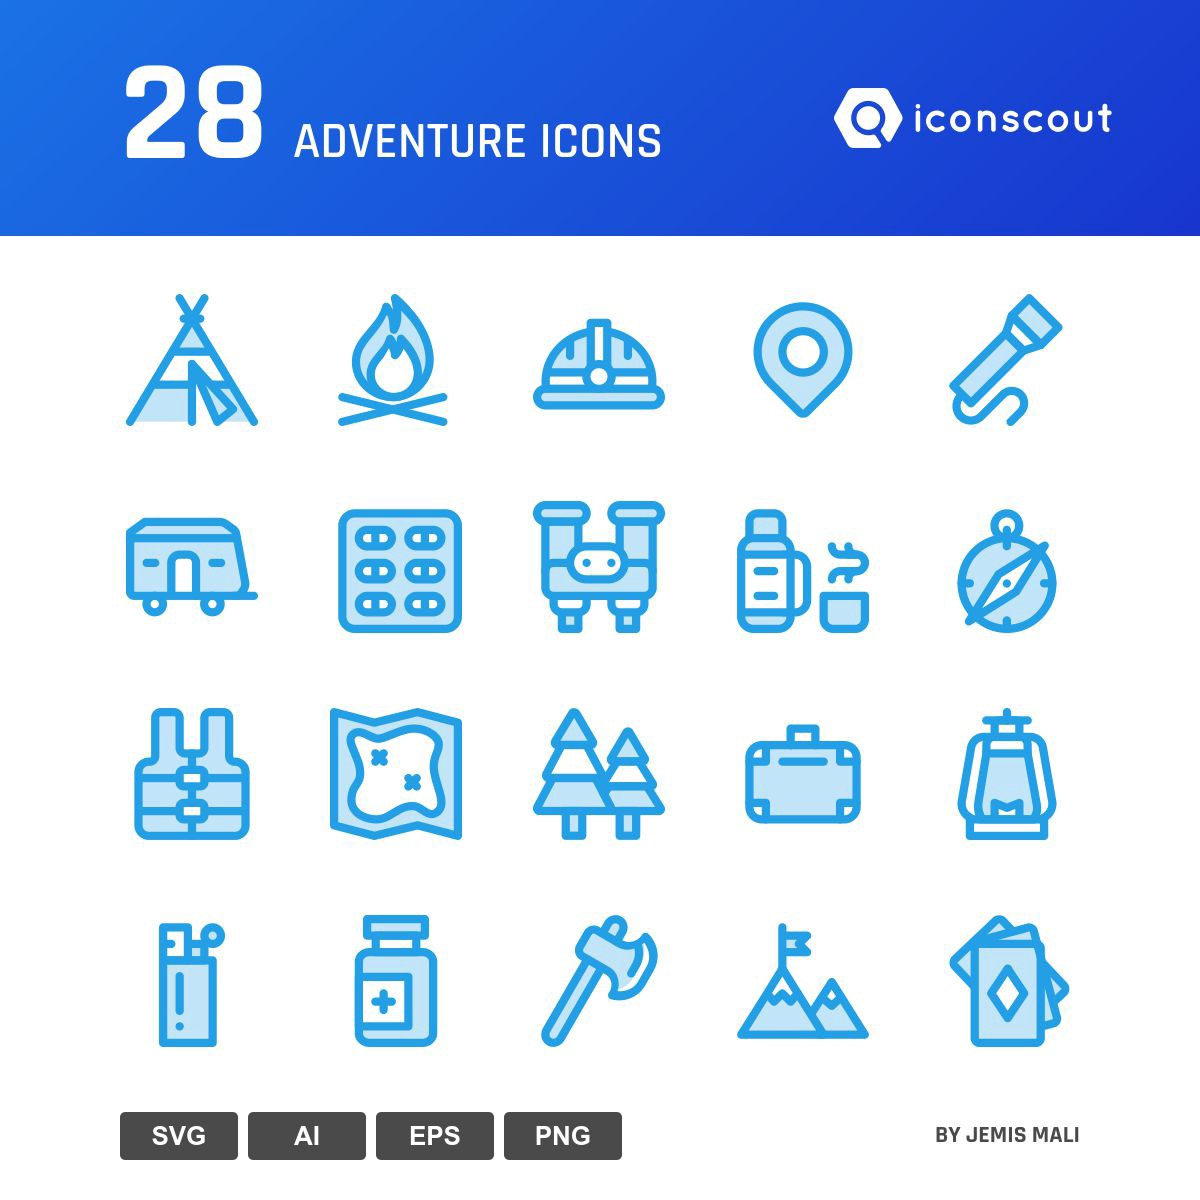 Adventure icons by Jemis Mali